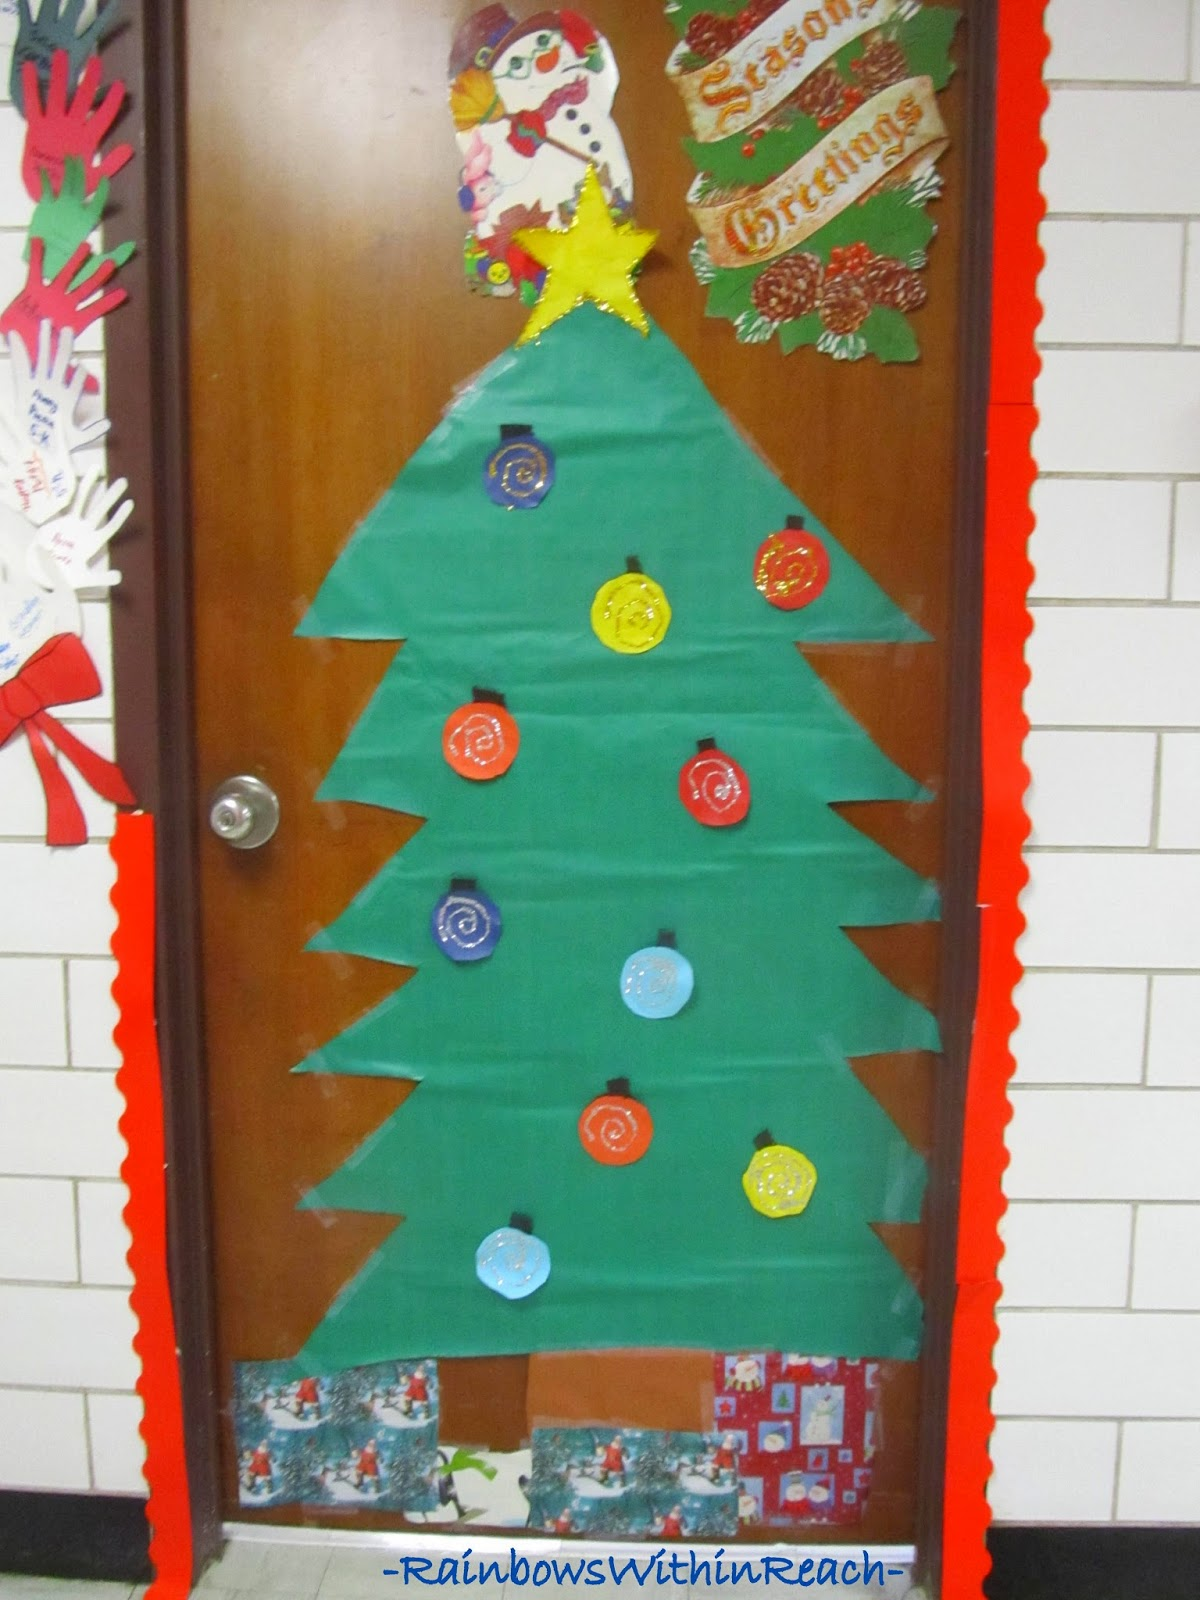 Preschool Xmas Calendar Ideas : Rainbowswithinreach christmas bulletin board ideas showcase